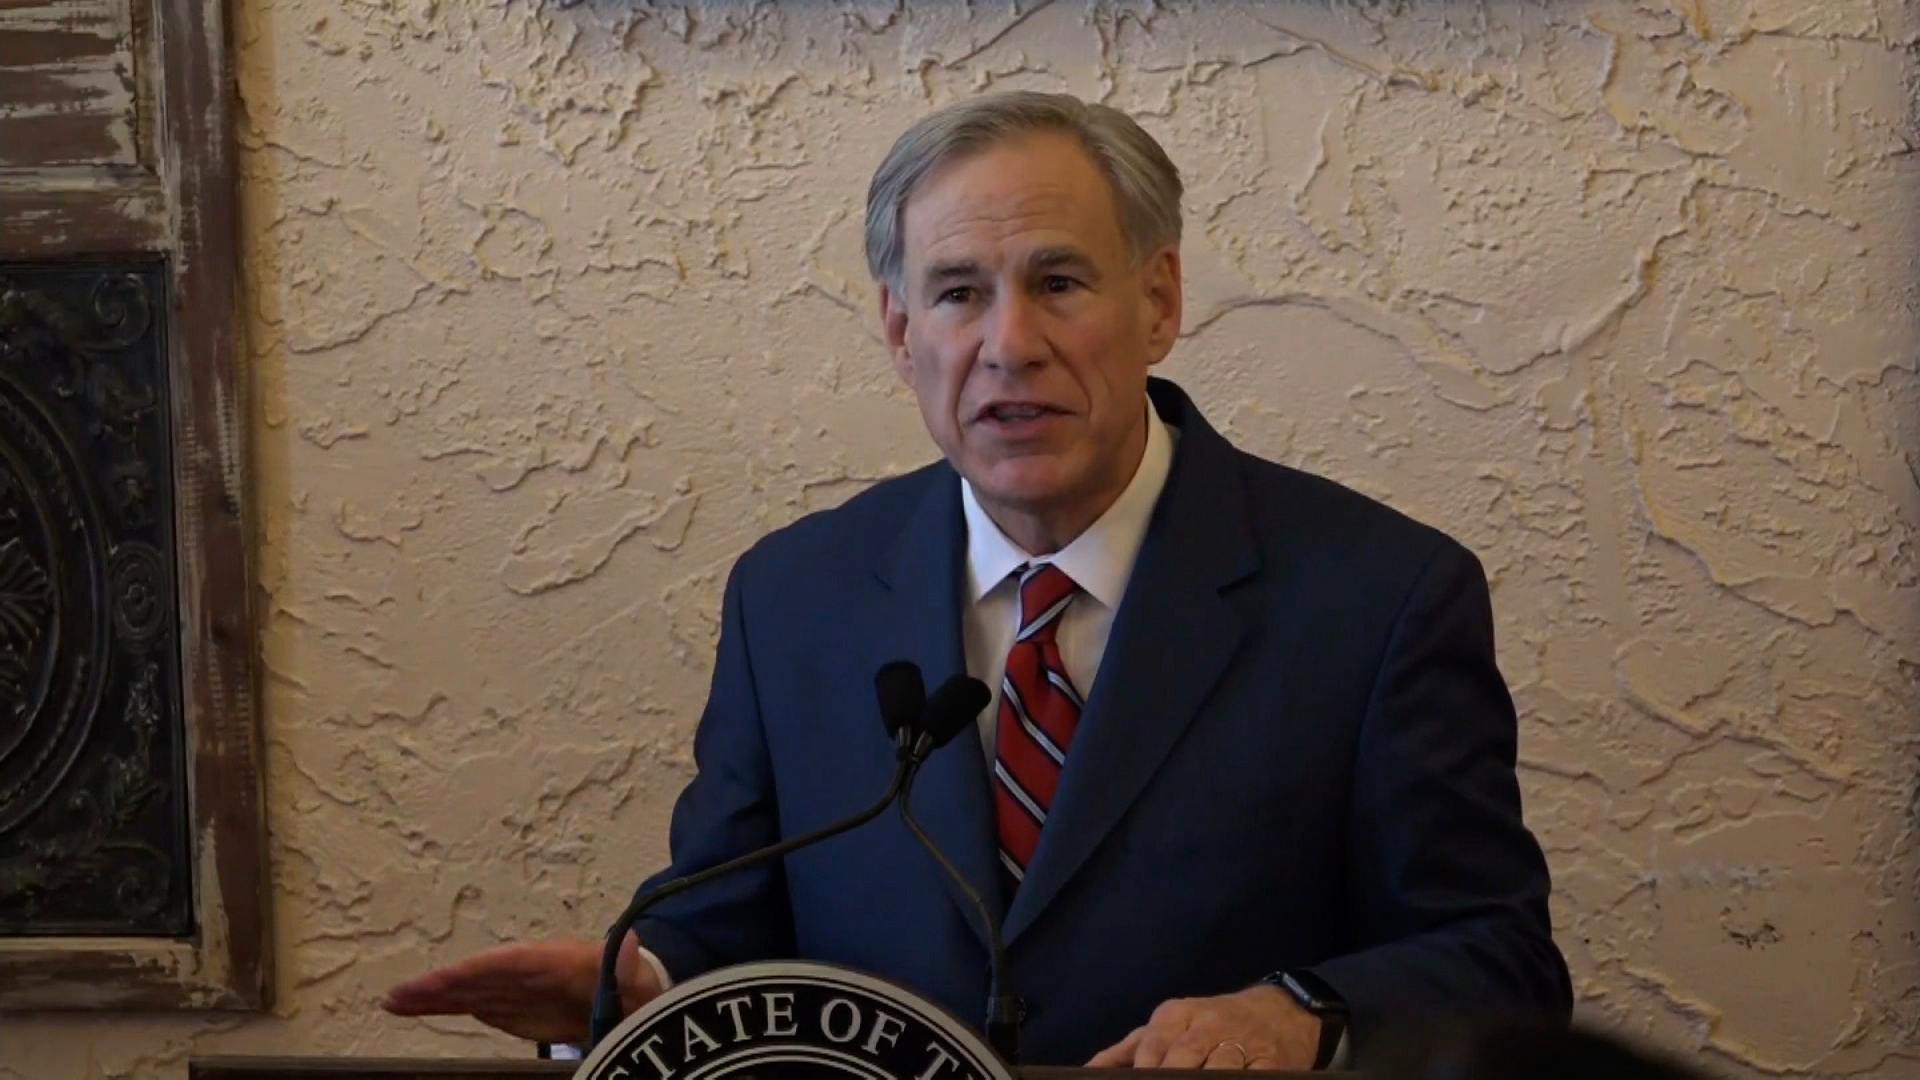 Texas Gov. Greg Abbott speaks during a press conference in Lubbock, Texas, on March 2.